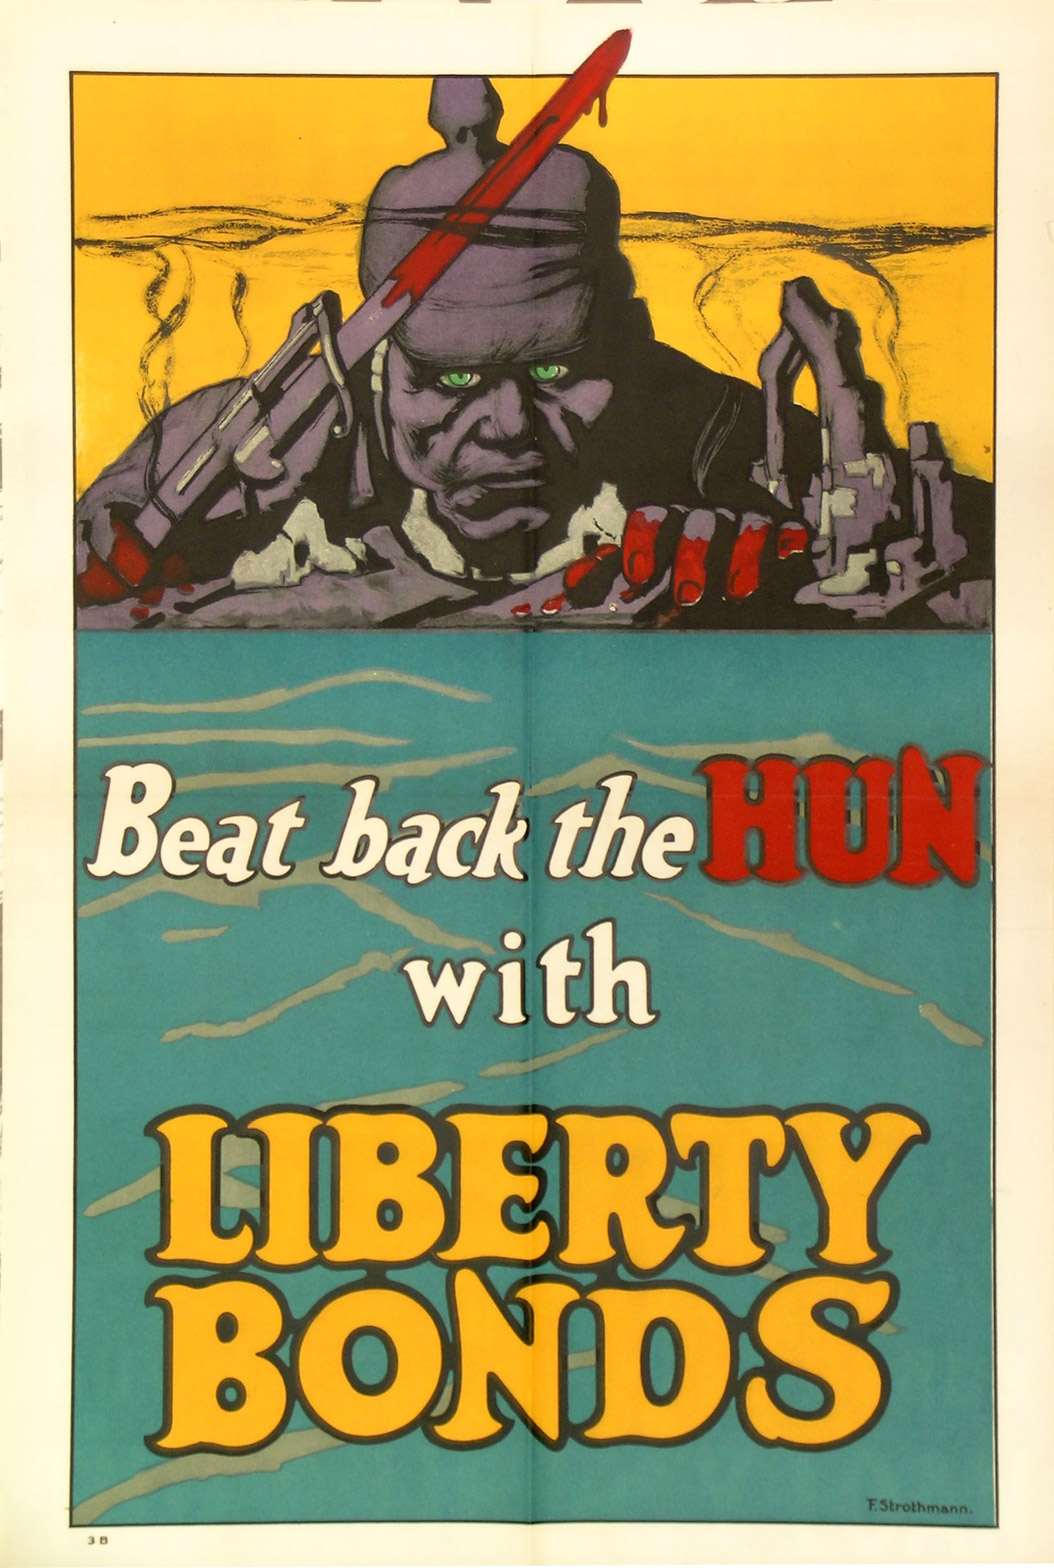 Posters such as this were used to help sell Liberty Bonds.